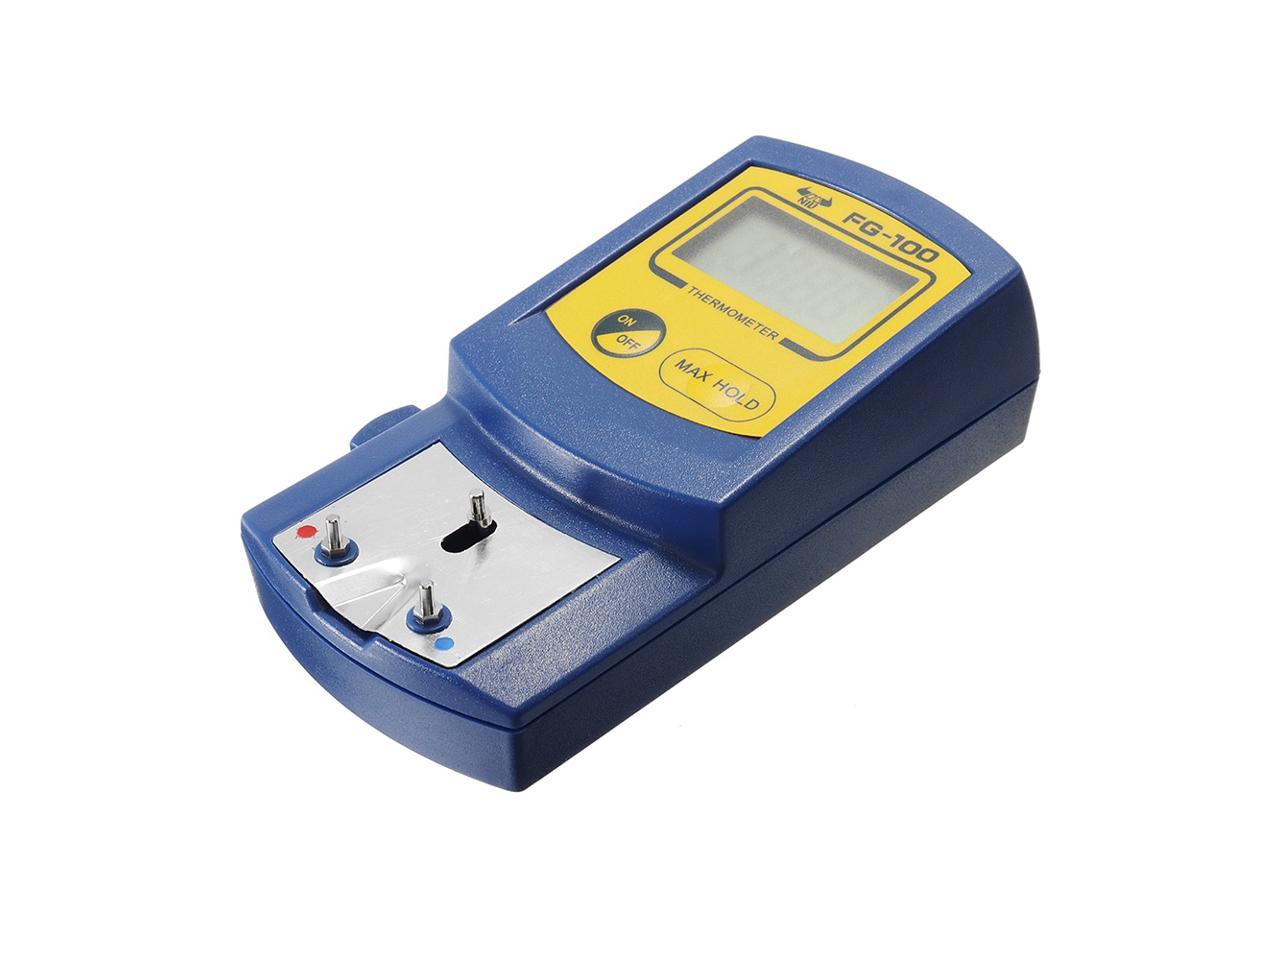 LCD FG-100 Display Soldering Iron Tip Thermometer Temperature Tester 0-700℃